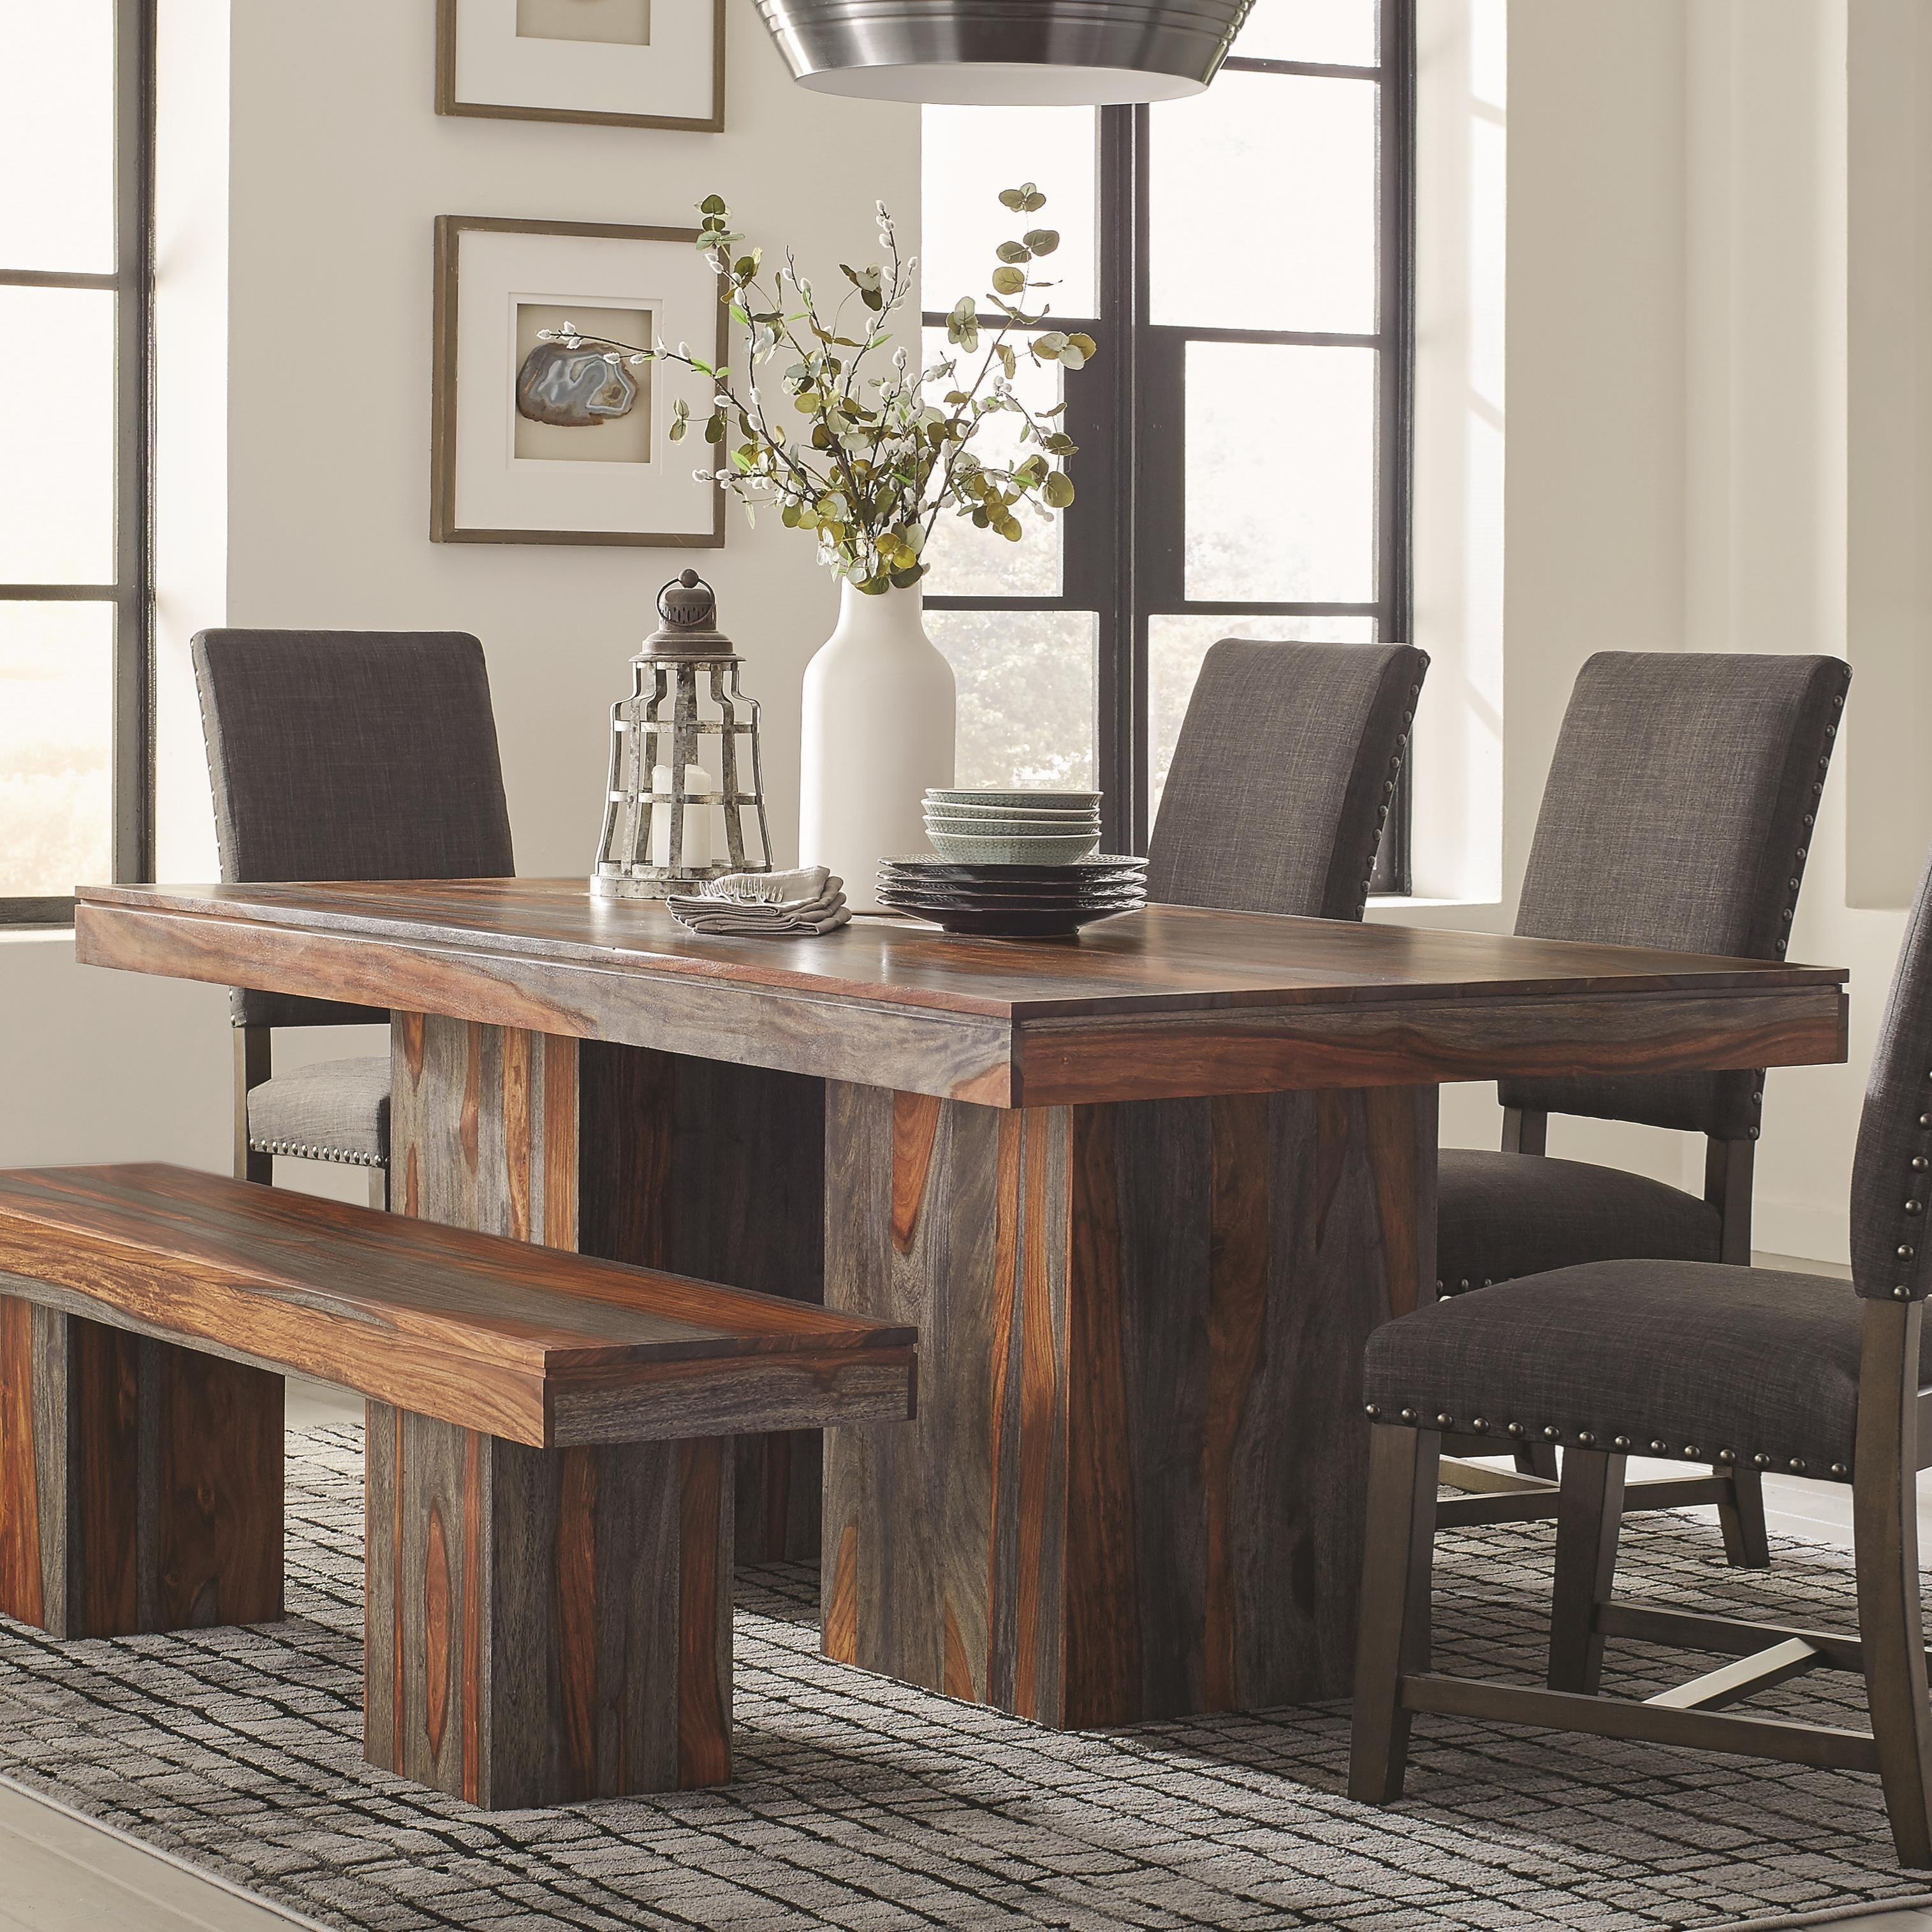 Binghamton Sheesham Rustic Dining Table by Scott Living at Standard  Furniture